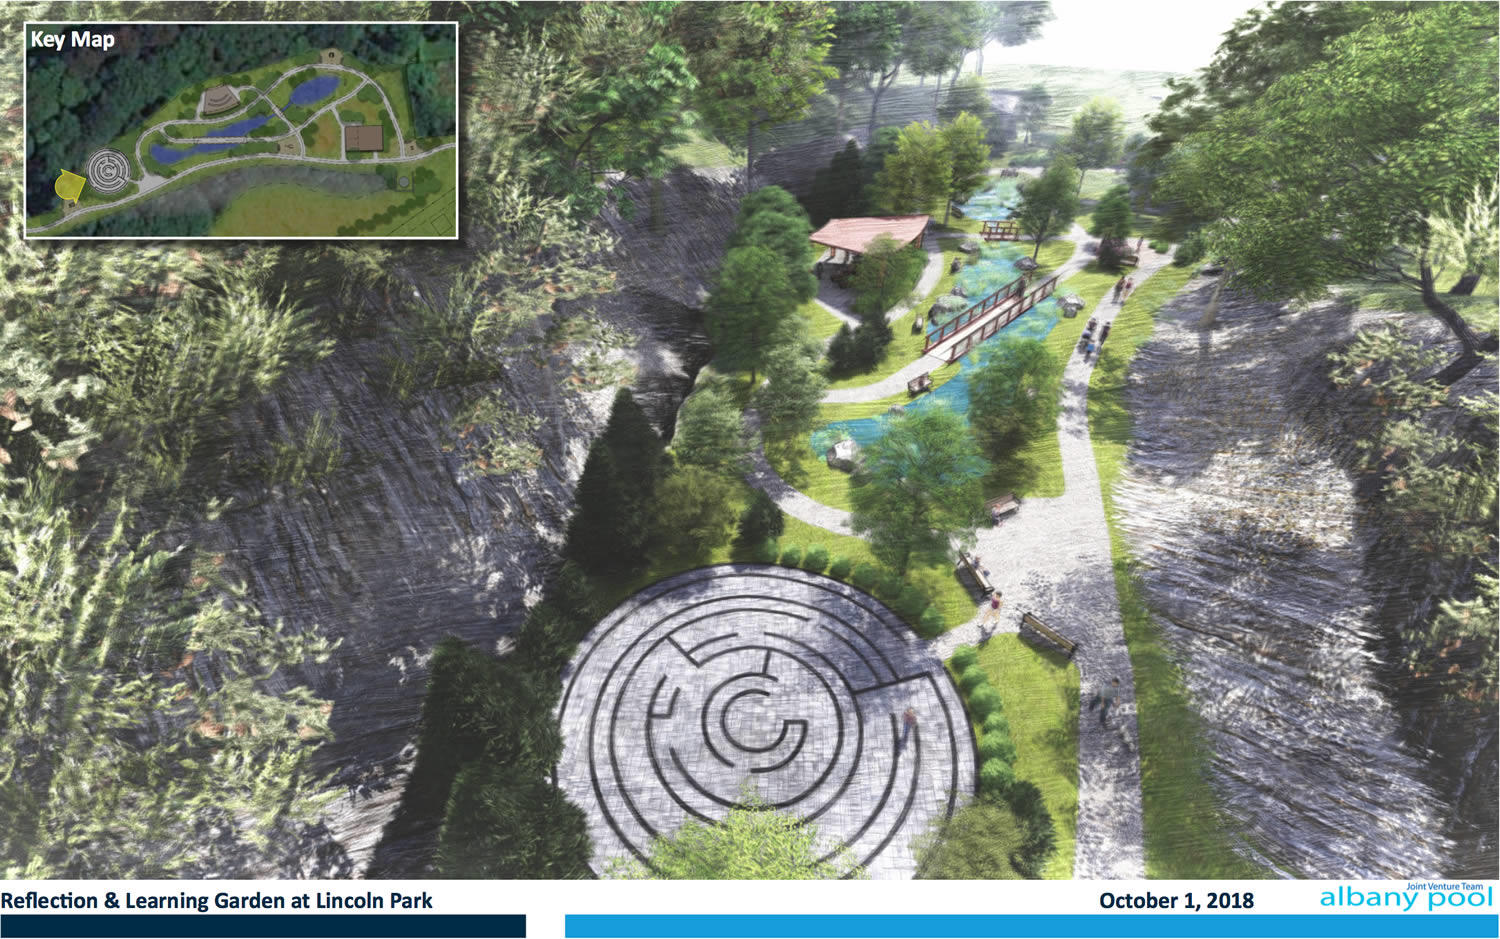 Lincoln Park Beaver Creek Clean River garden proposal